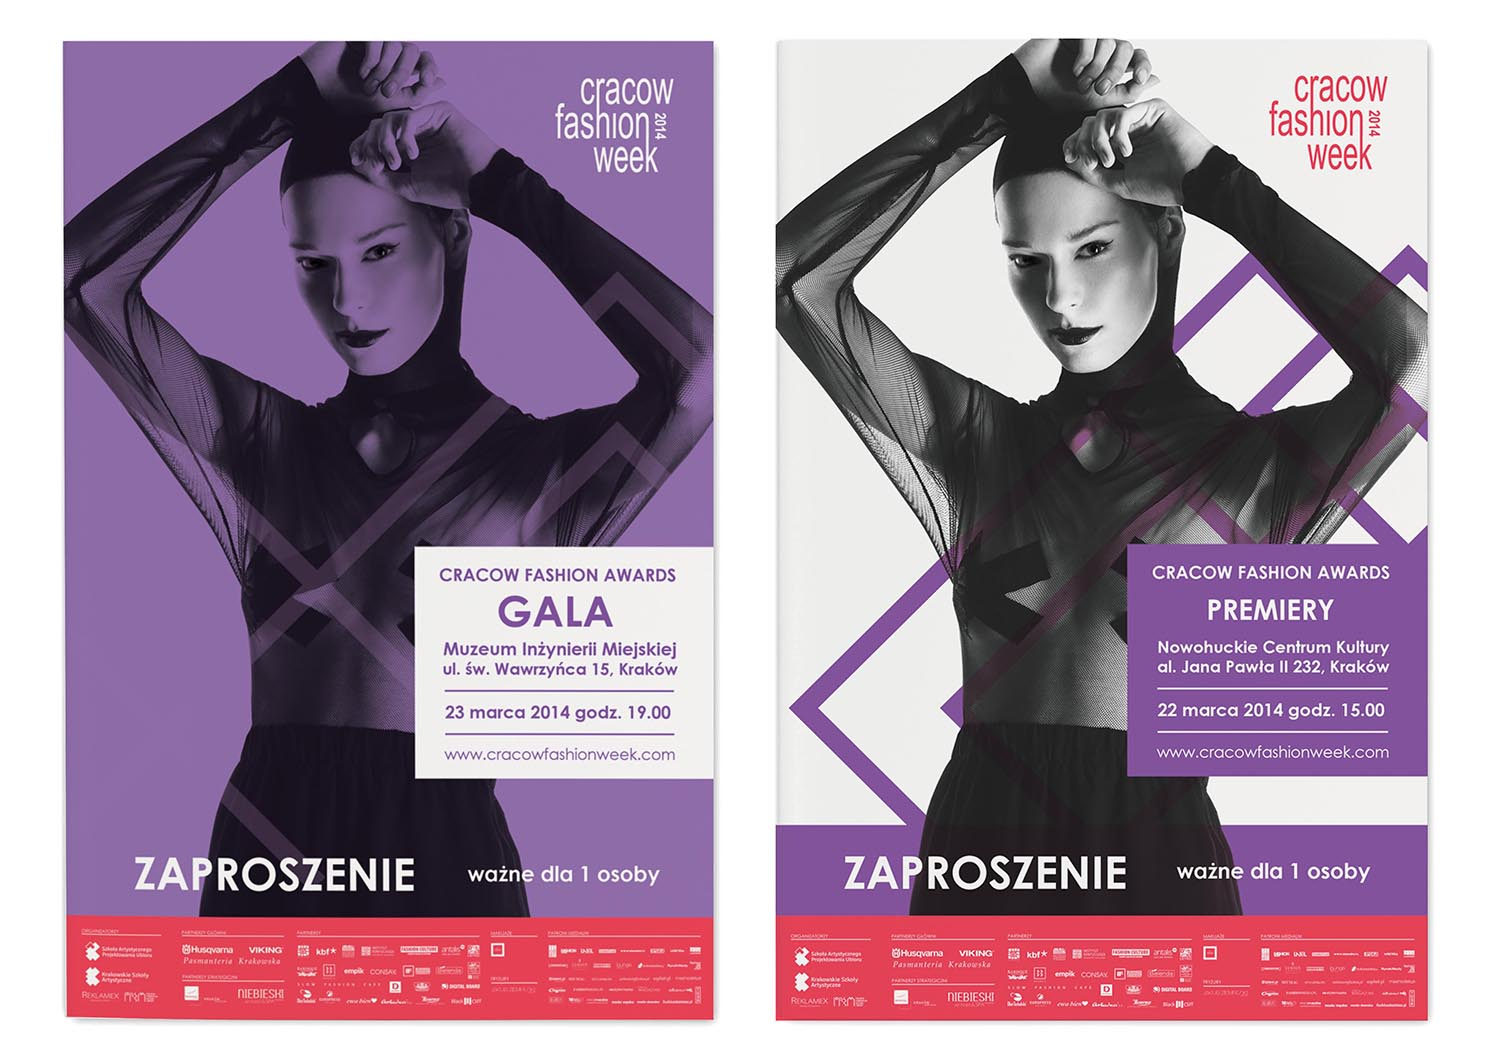 CRACOW FASHION WEEK 2014 (7)